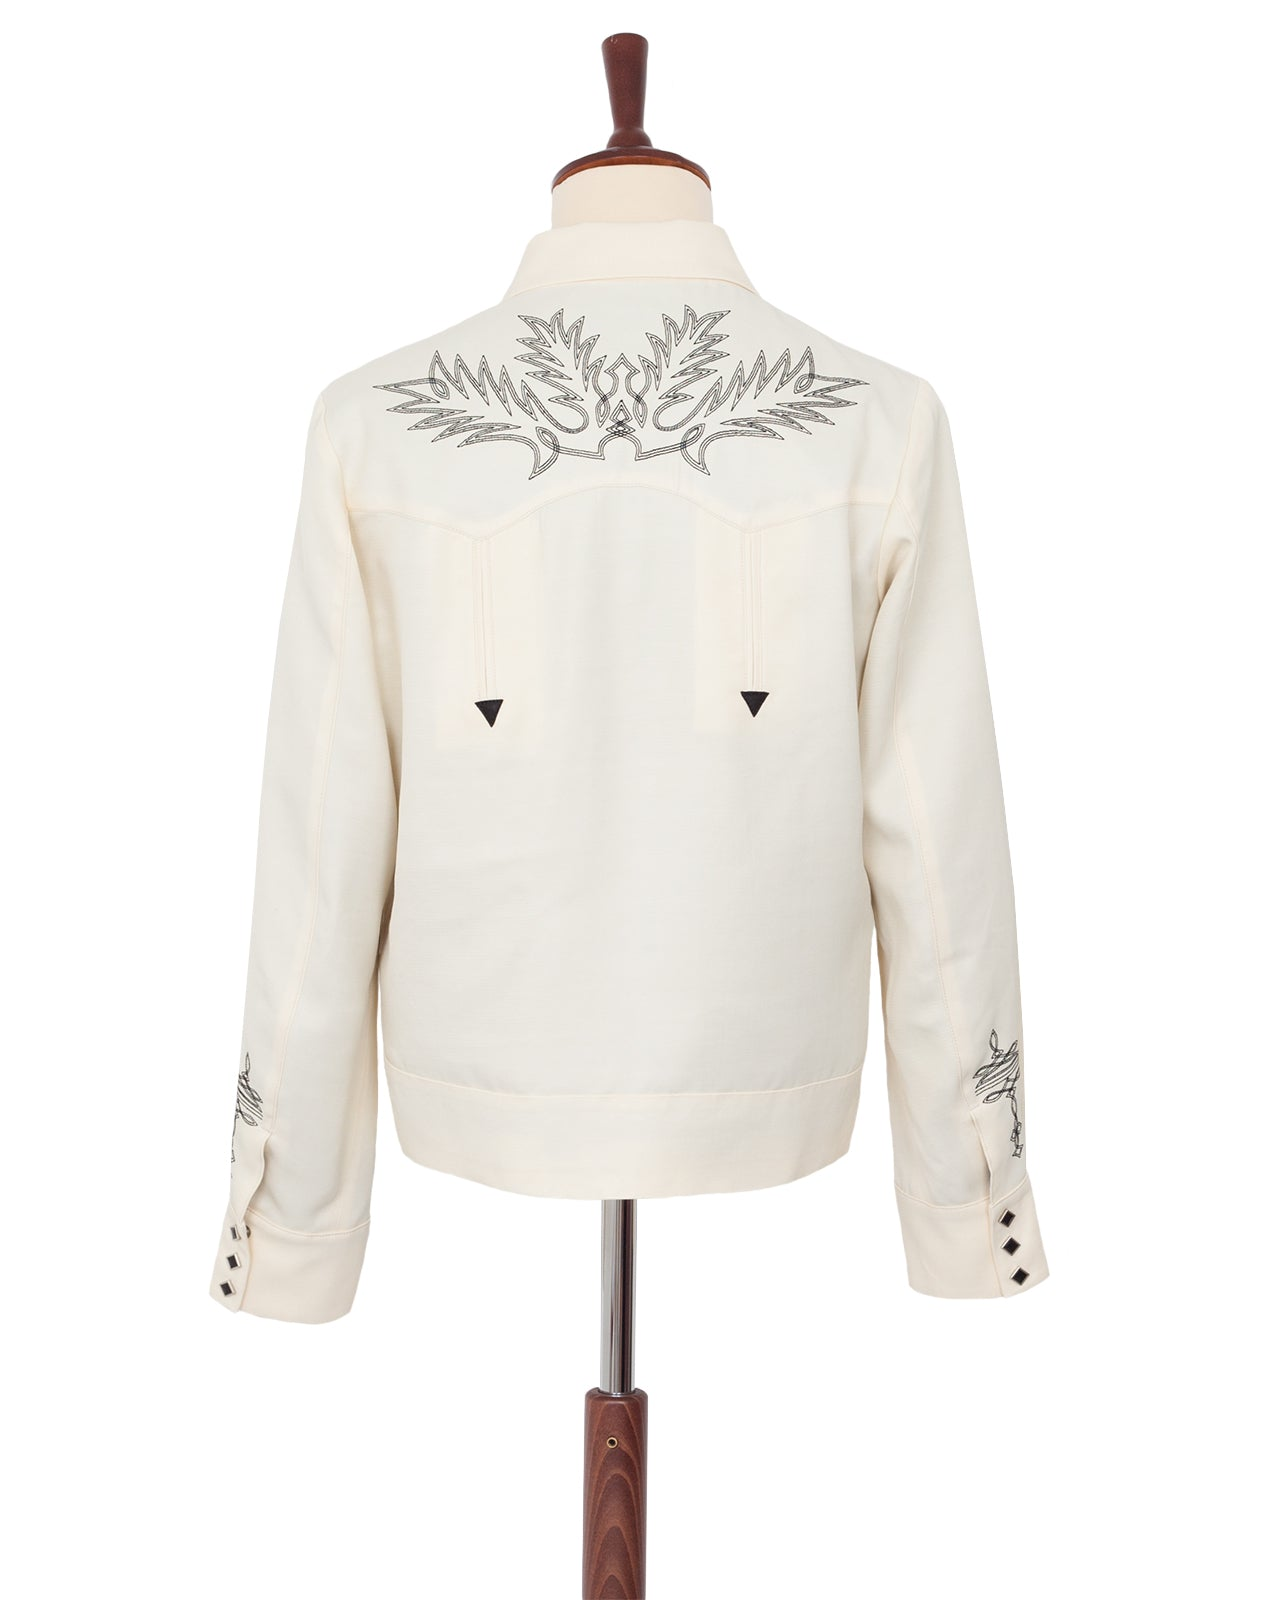 The Letters Bolero Jacket, Rayon Twill, White